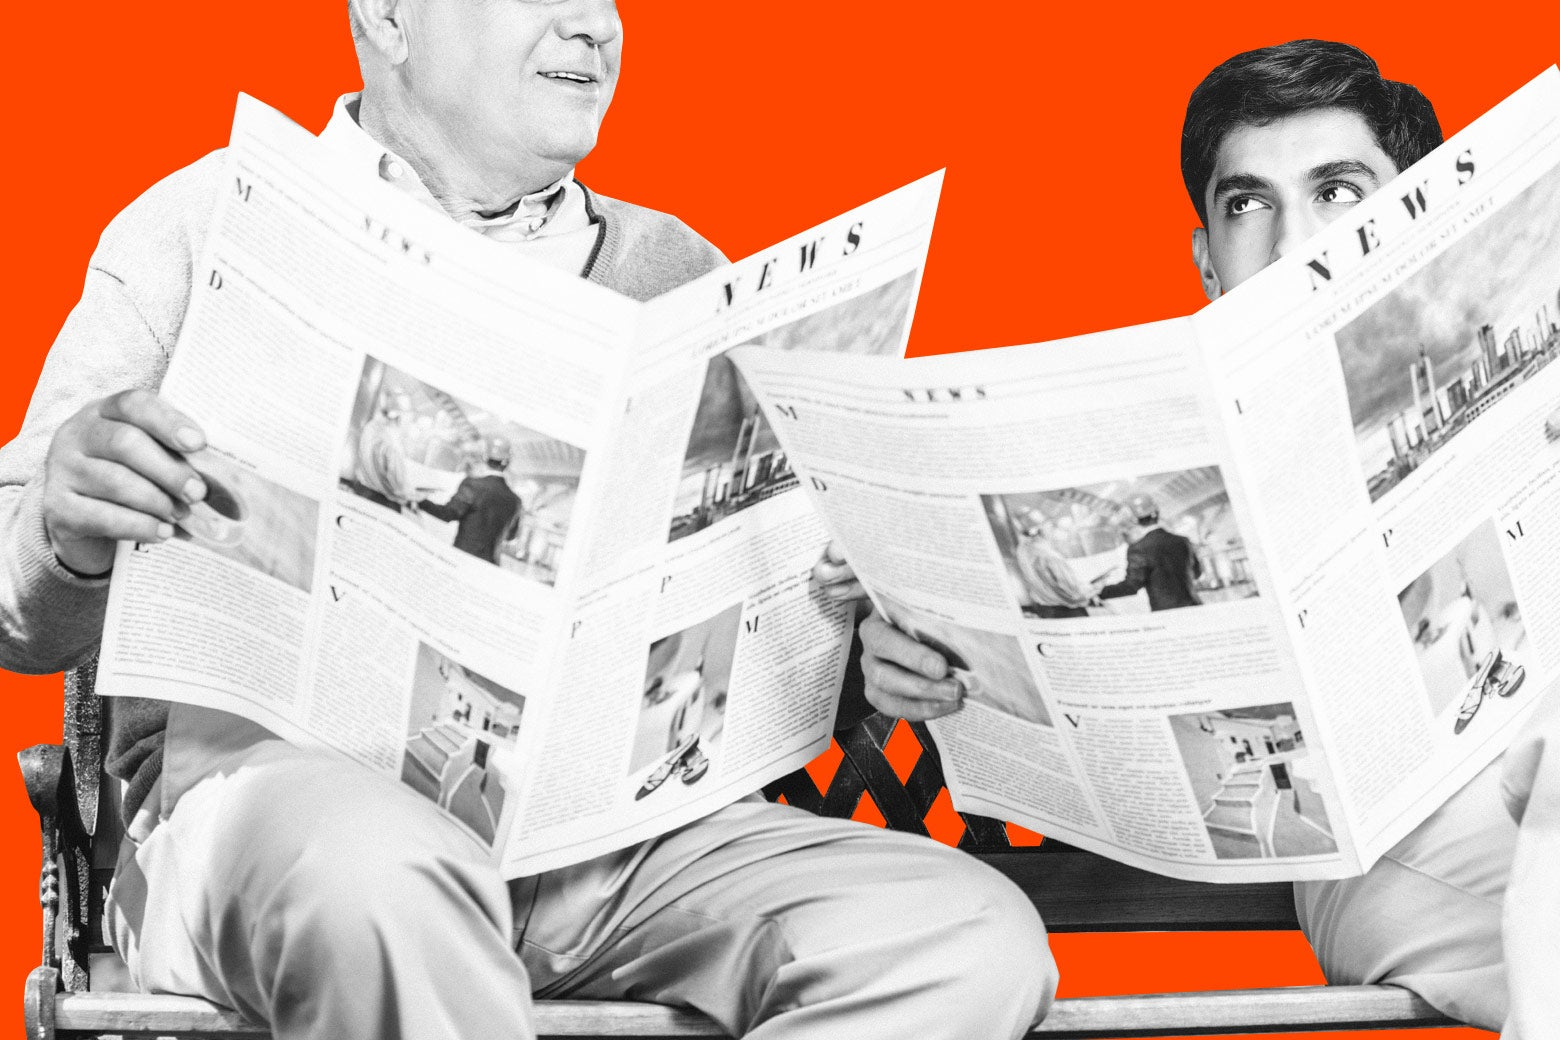 An older adult and a young adult both read the newspaper.